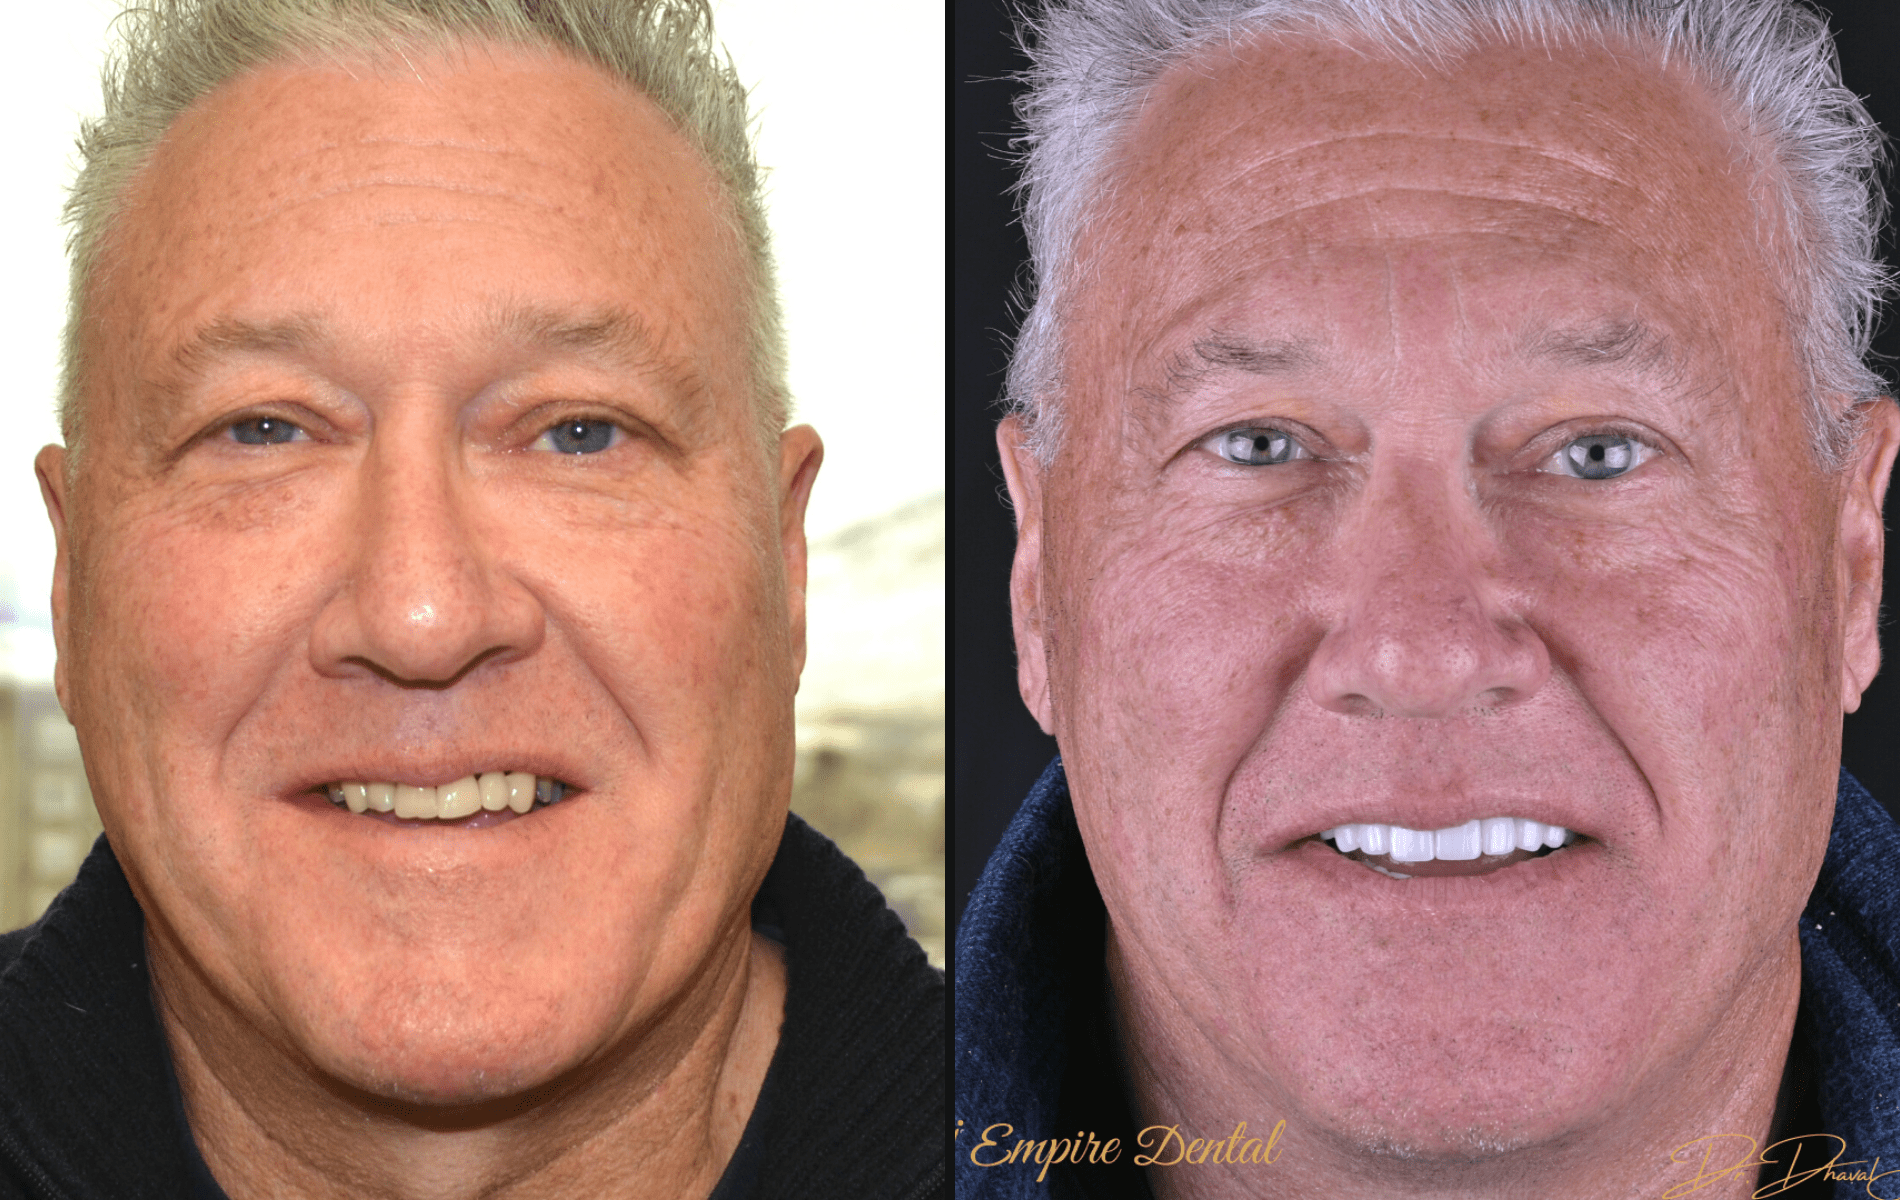 Copy of Empire Dental - Kristen before and after-min